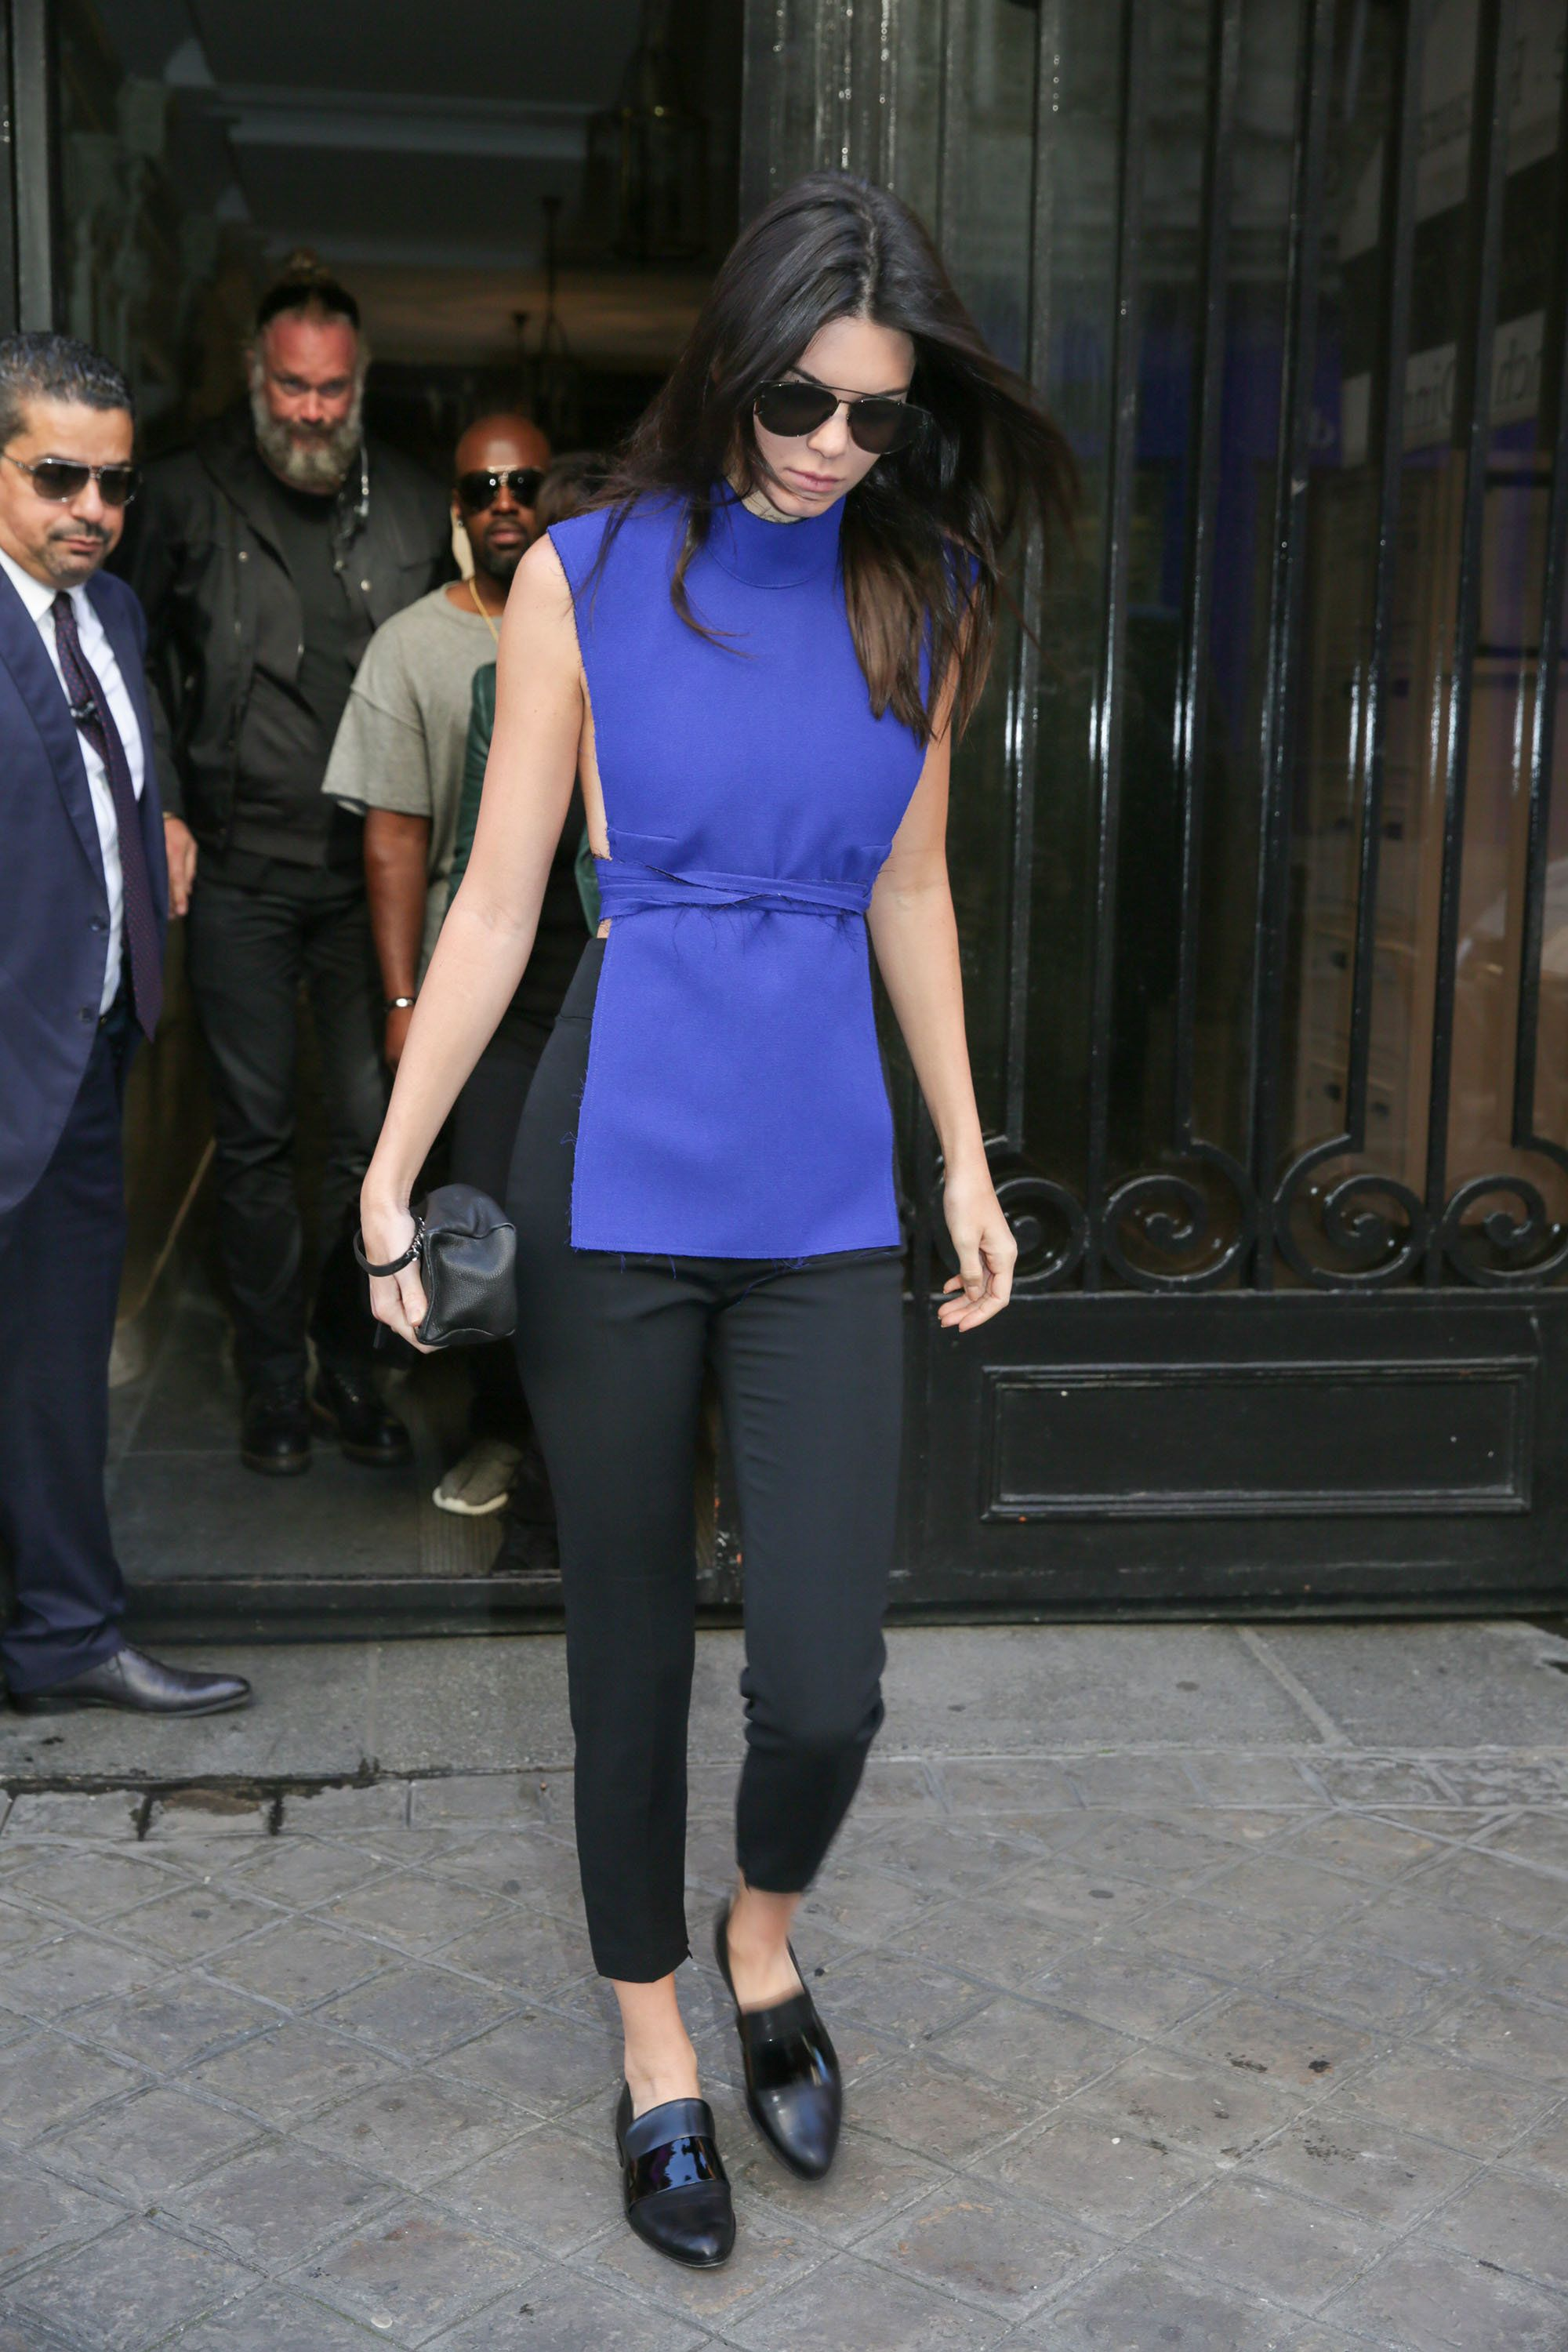 51864725 Kendall Jenner shopping in Paris, France with her mother Kris Jenner and Kris' boyfriend Corey Gamble on September 30, 2015. Kendall Jenner shopping in Paris, France with her mother Kris Jenner and Kris' boyfriend Corey Gamble on September 30, 2015. Pictured: Kendall Jenner FameFlynet, Inc - Beverly Hills, CA, USA - +1 (818) 307-4813 RESTRICTIONS APPLY: USA ONLY